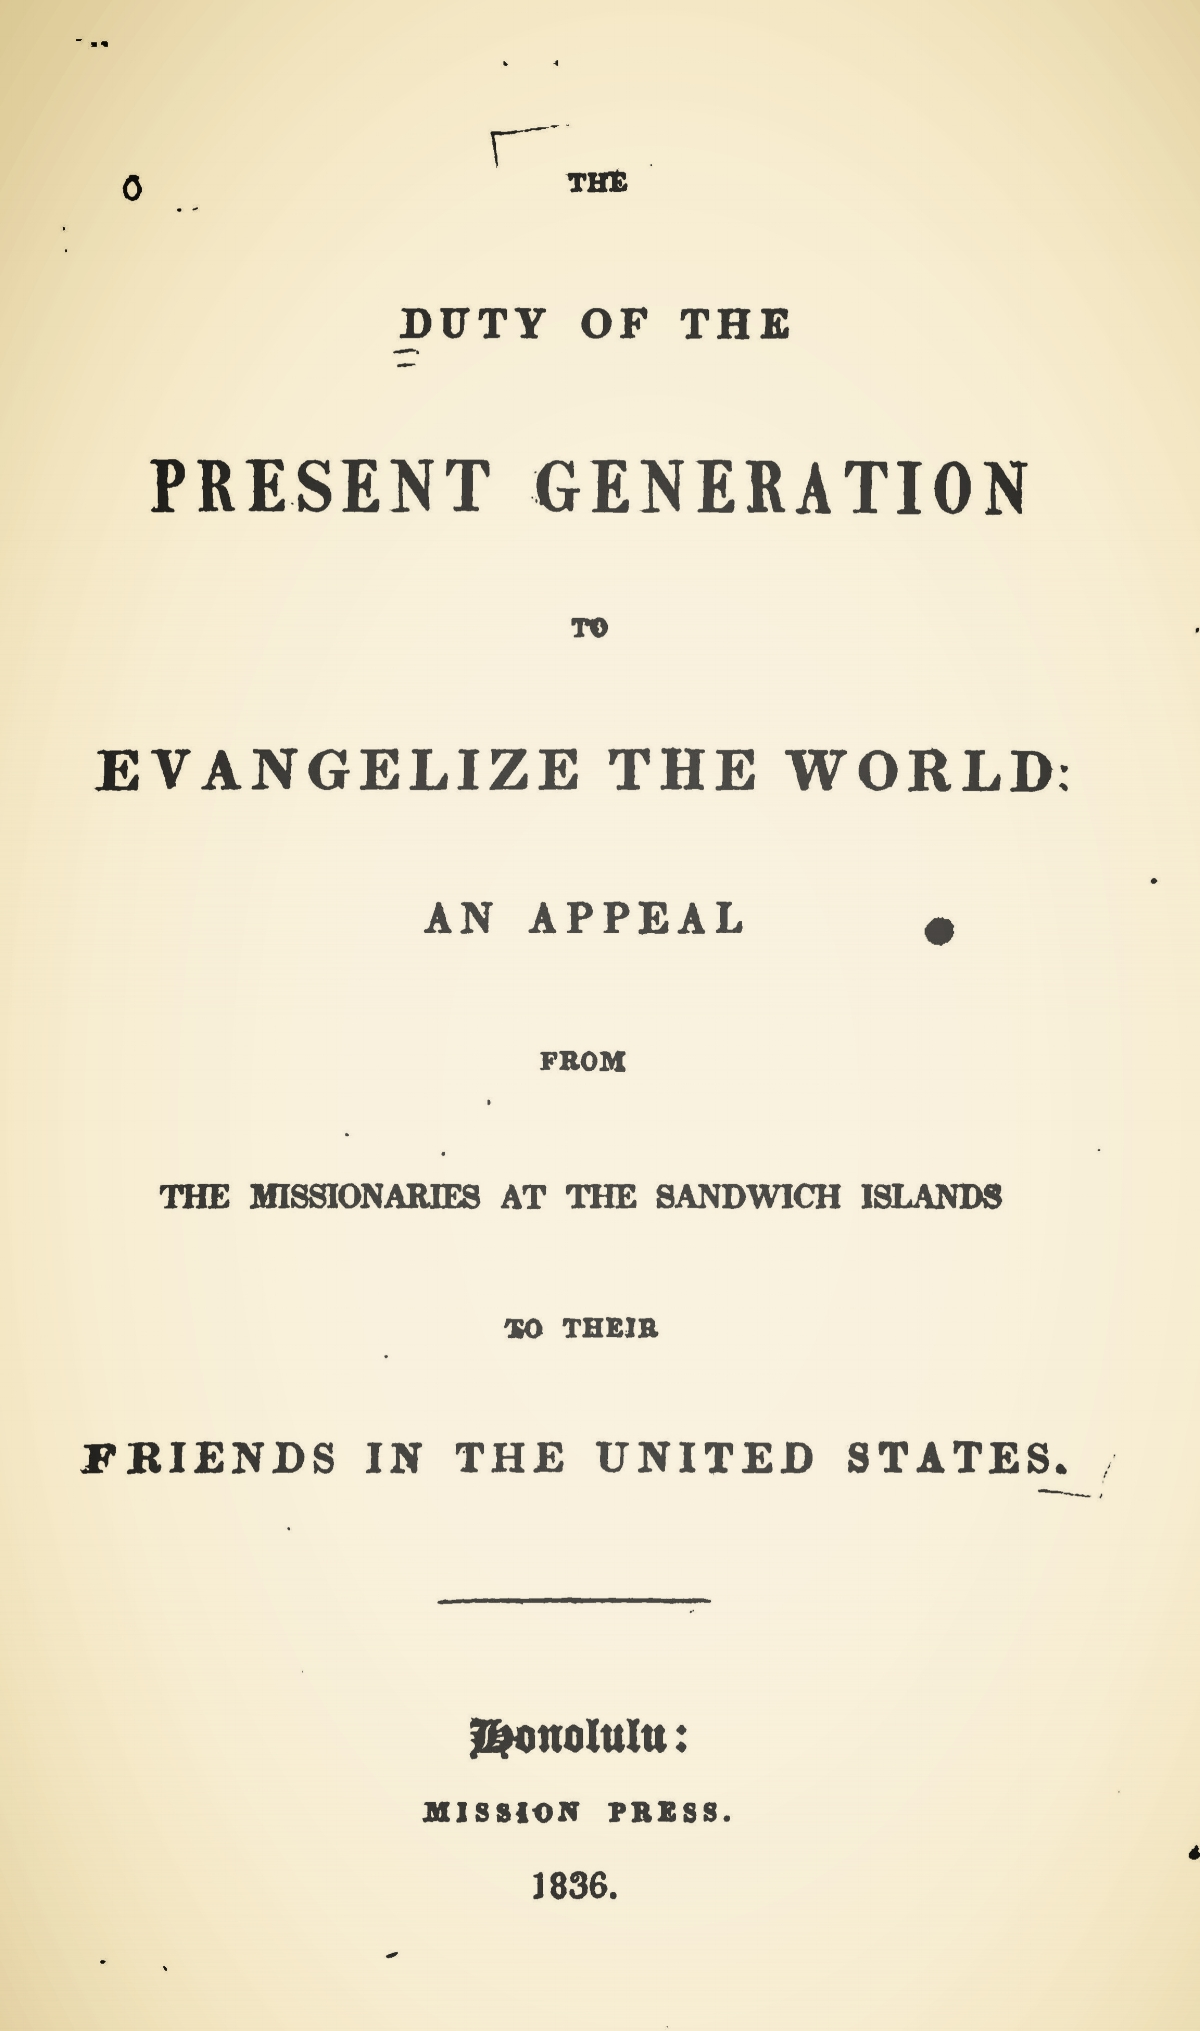 Alexander, William Patterson, The Duty of the Present Generation to Evangelize the World Title Page.jpg